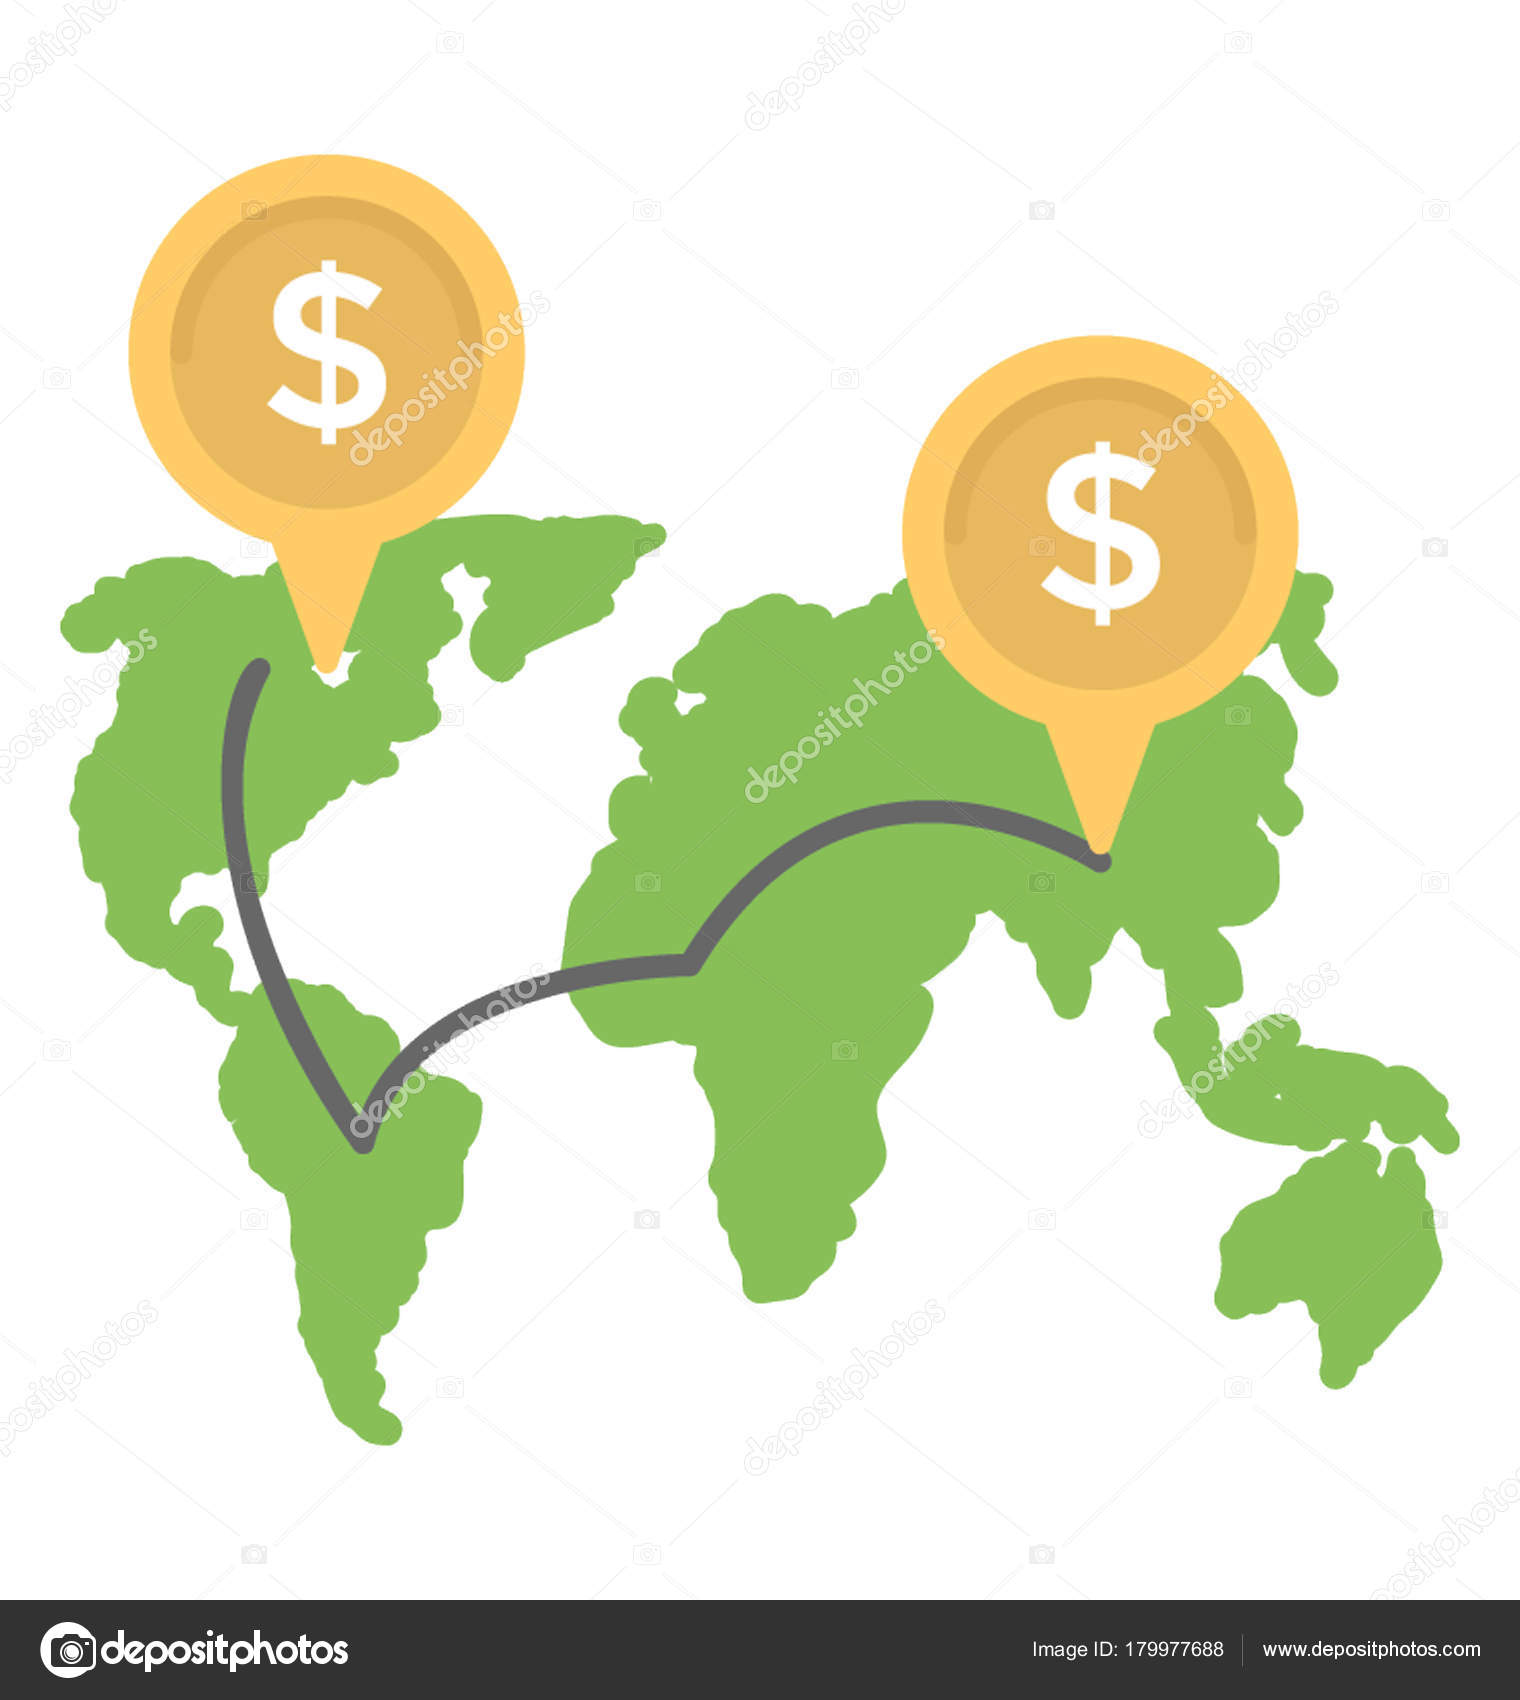 World map dollar sign coins global business banking trade economic world map and dollar sign with coins global business banking trade or economic concept vector flat icon vector by creativestall gumiabroncs Images